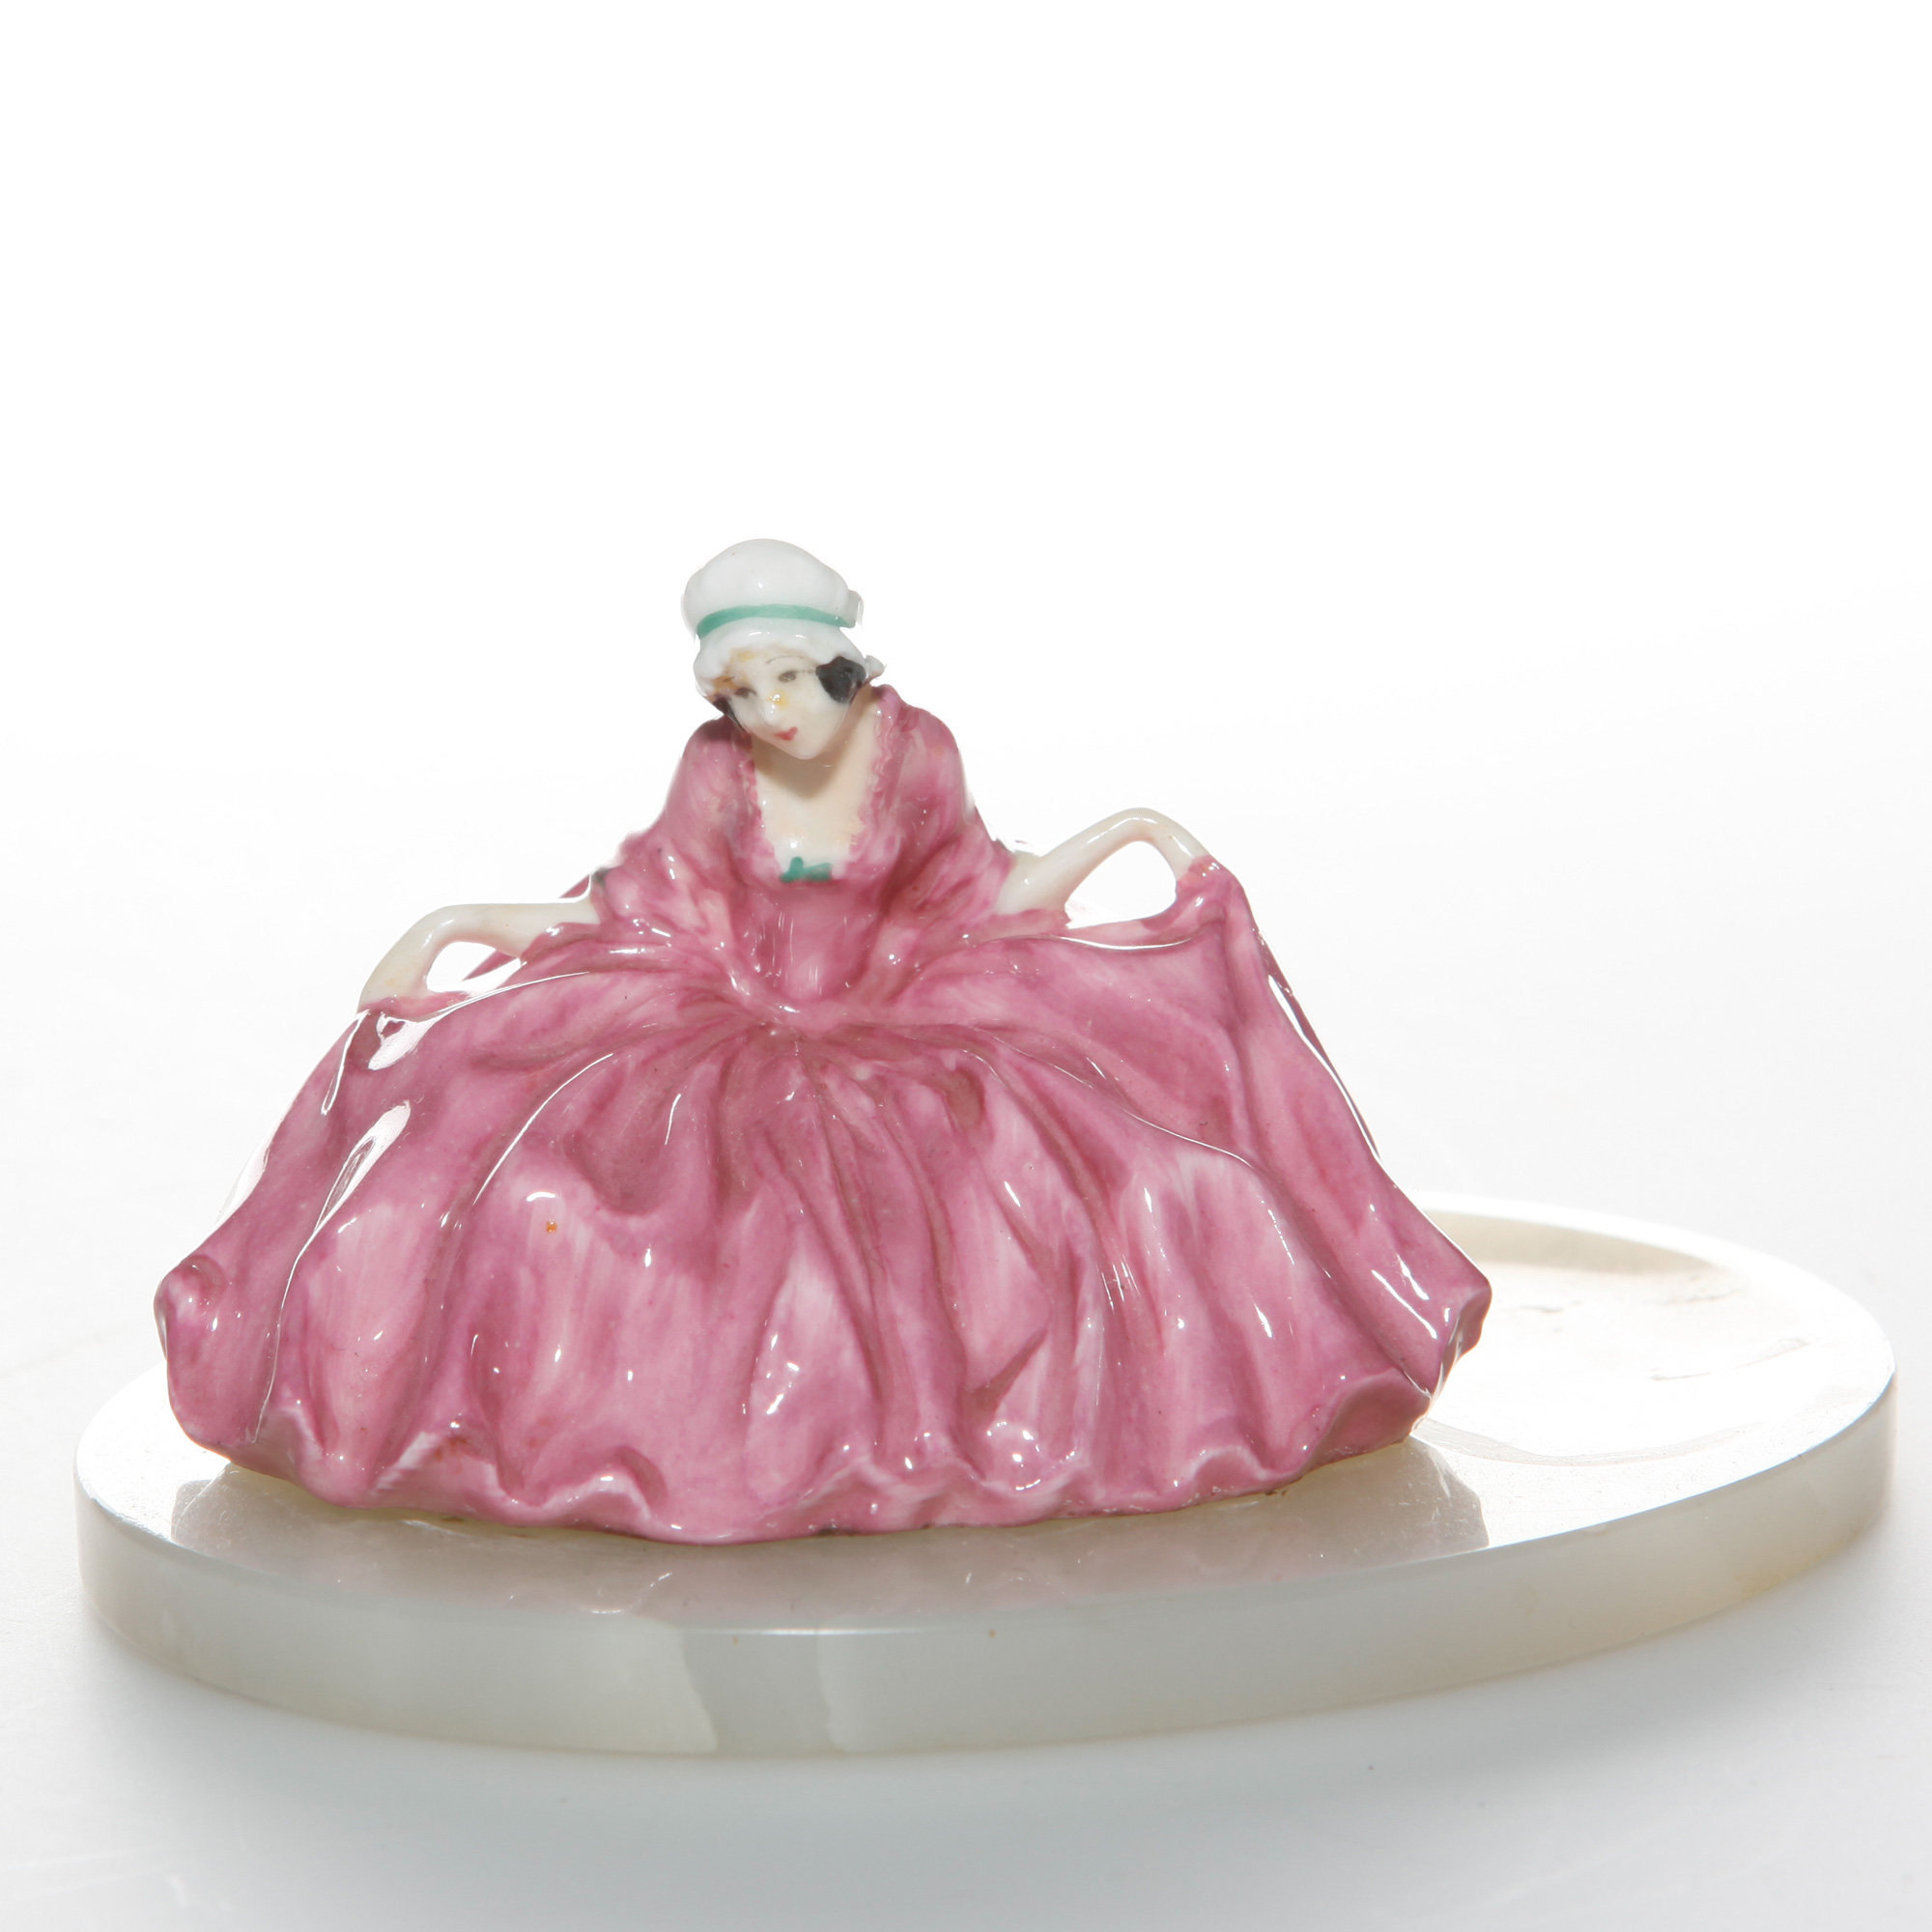 Polly Peachum on Base M021 - Royal Doulton Figurine